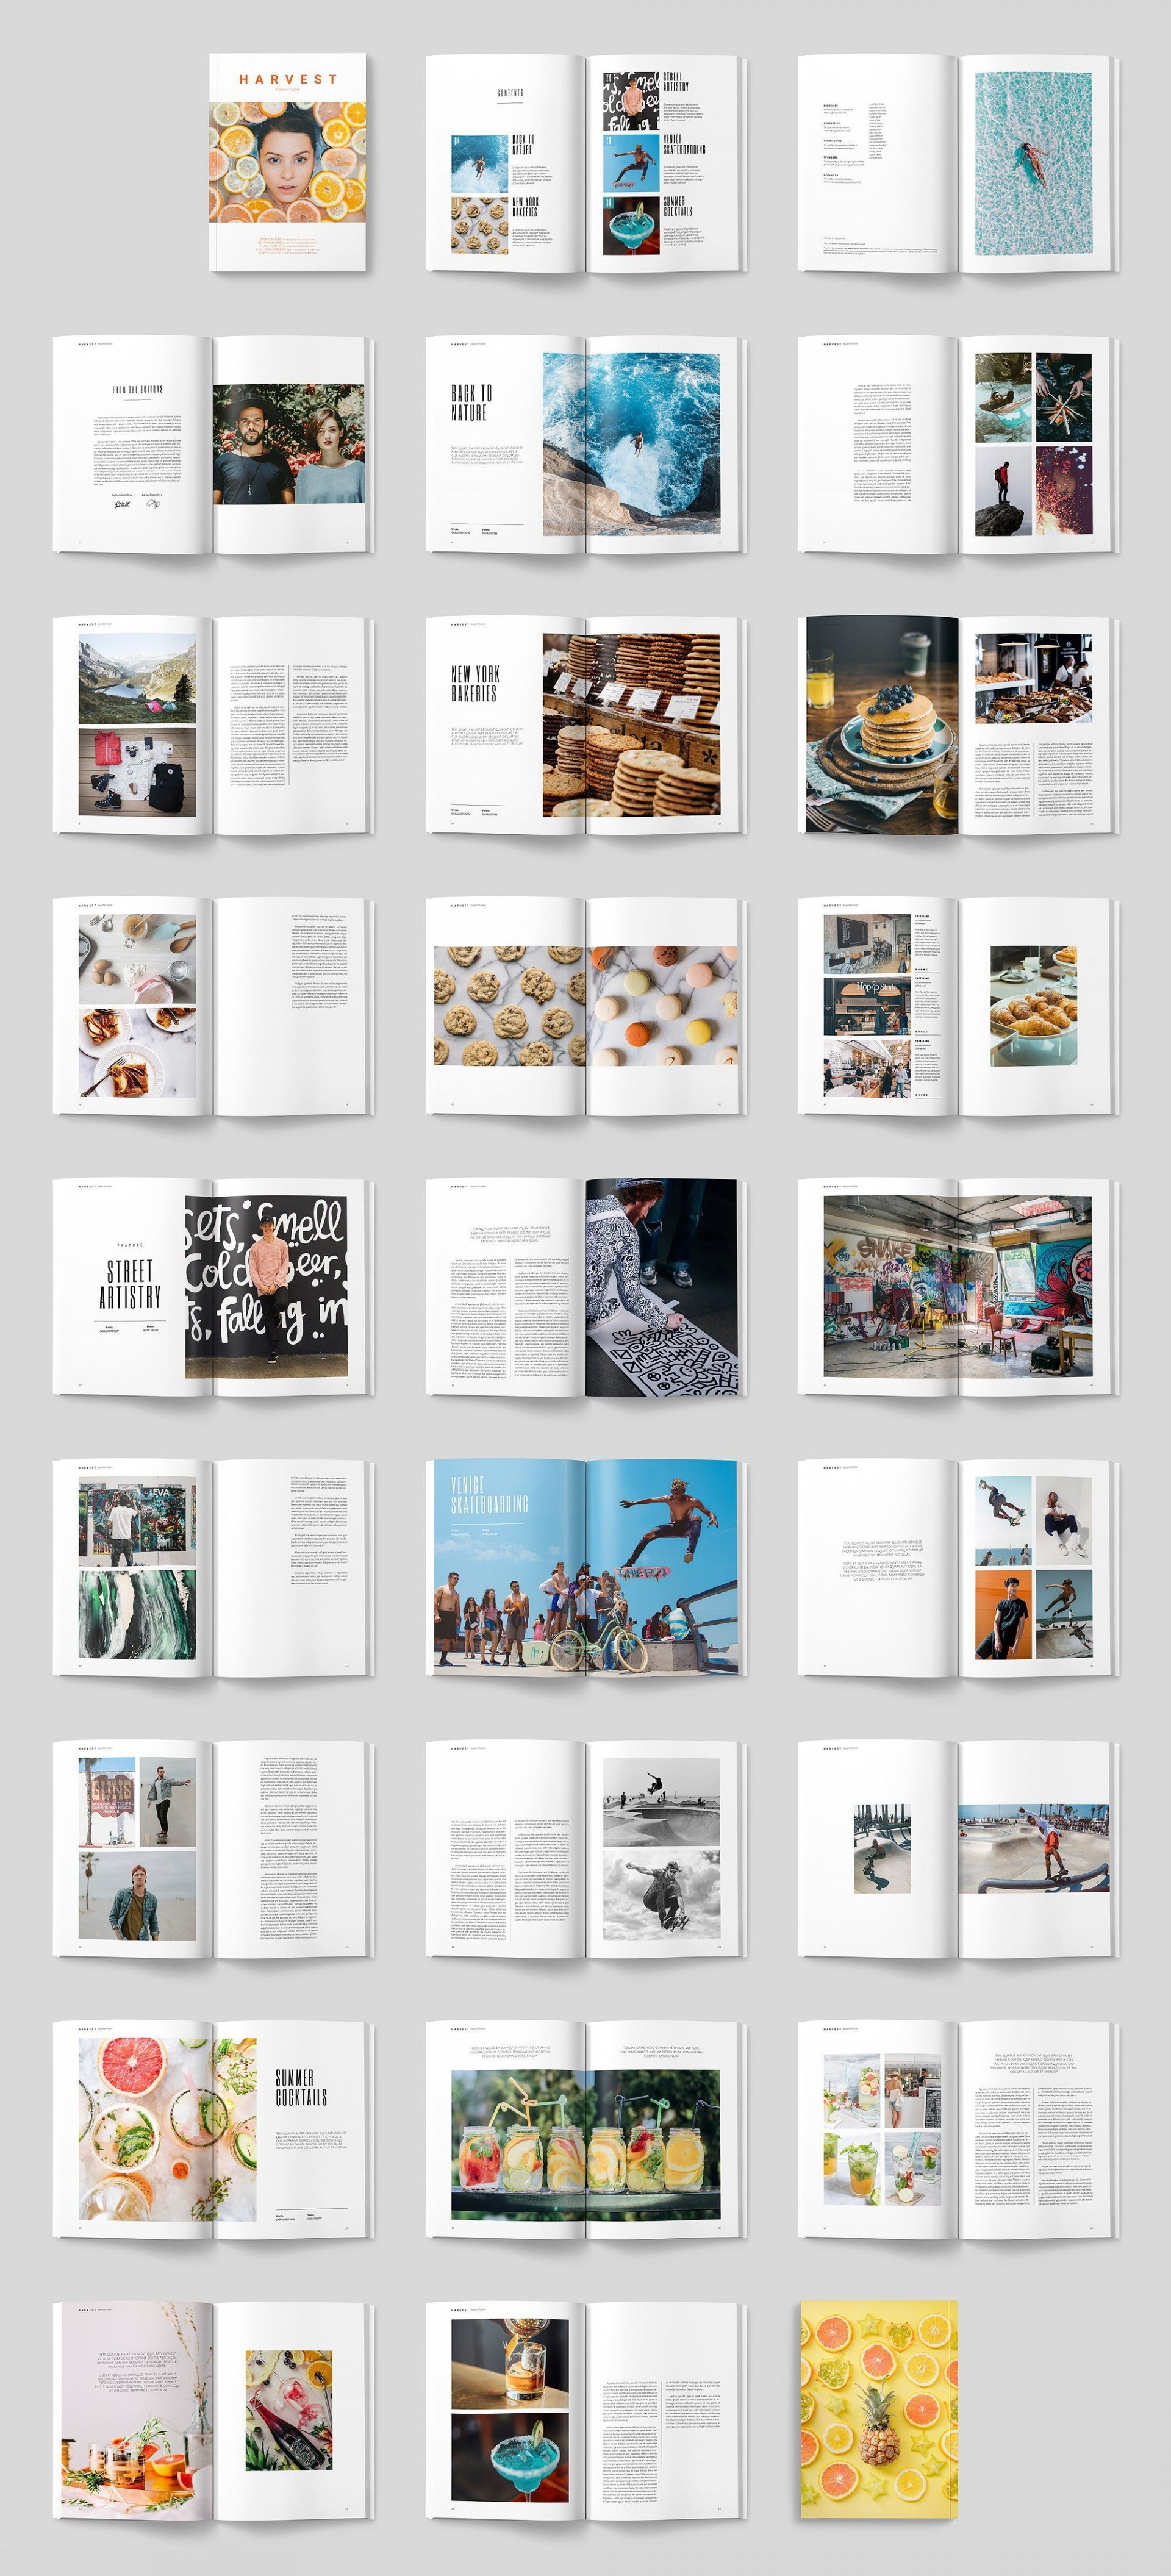 004 Shocking Magazine Template For Microsoft Word Concept  Layout Design Download1920